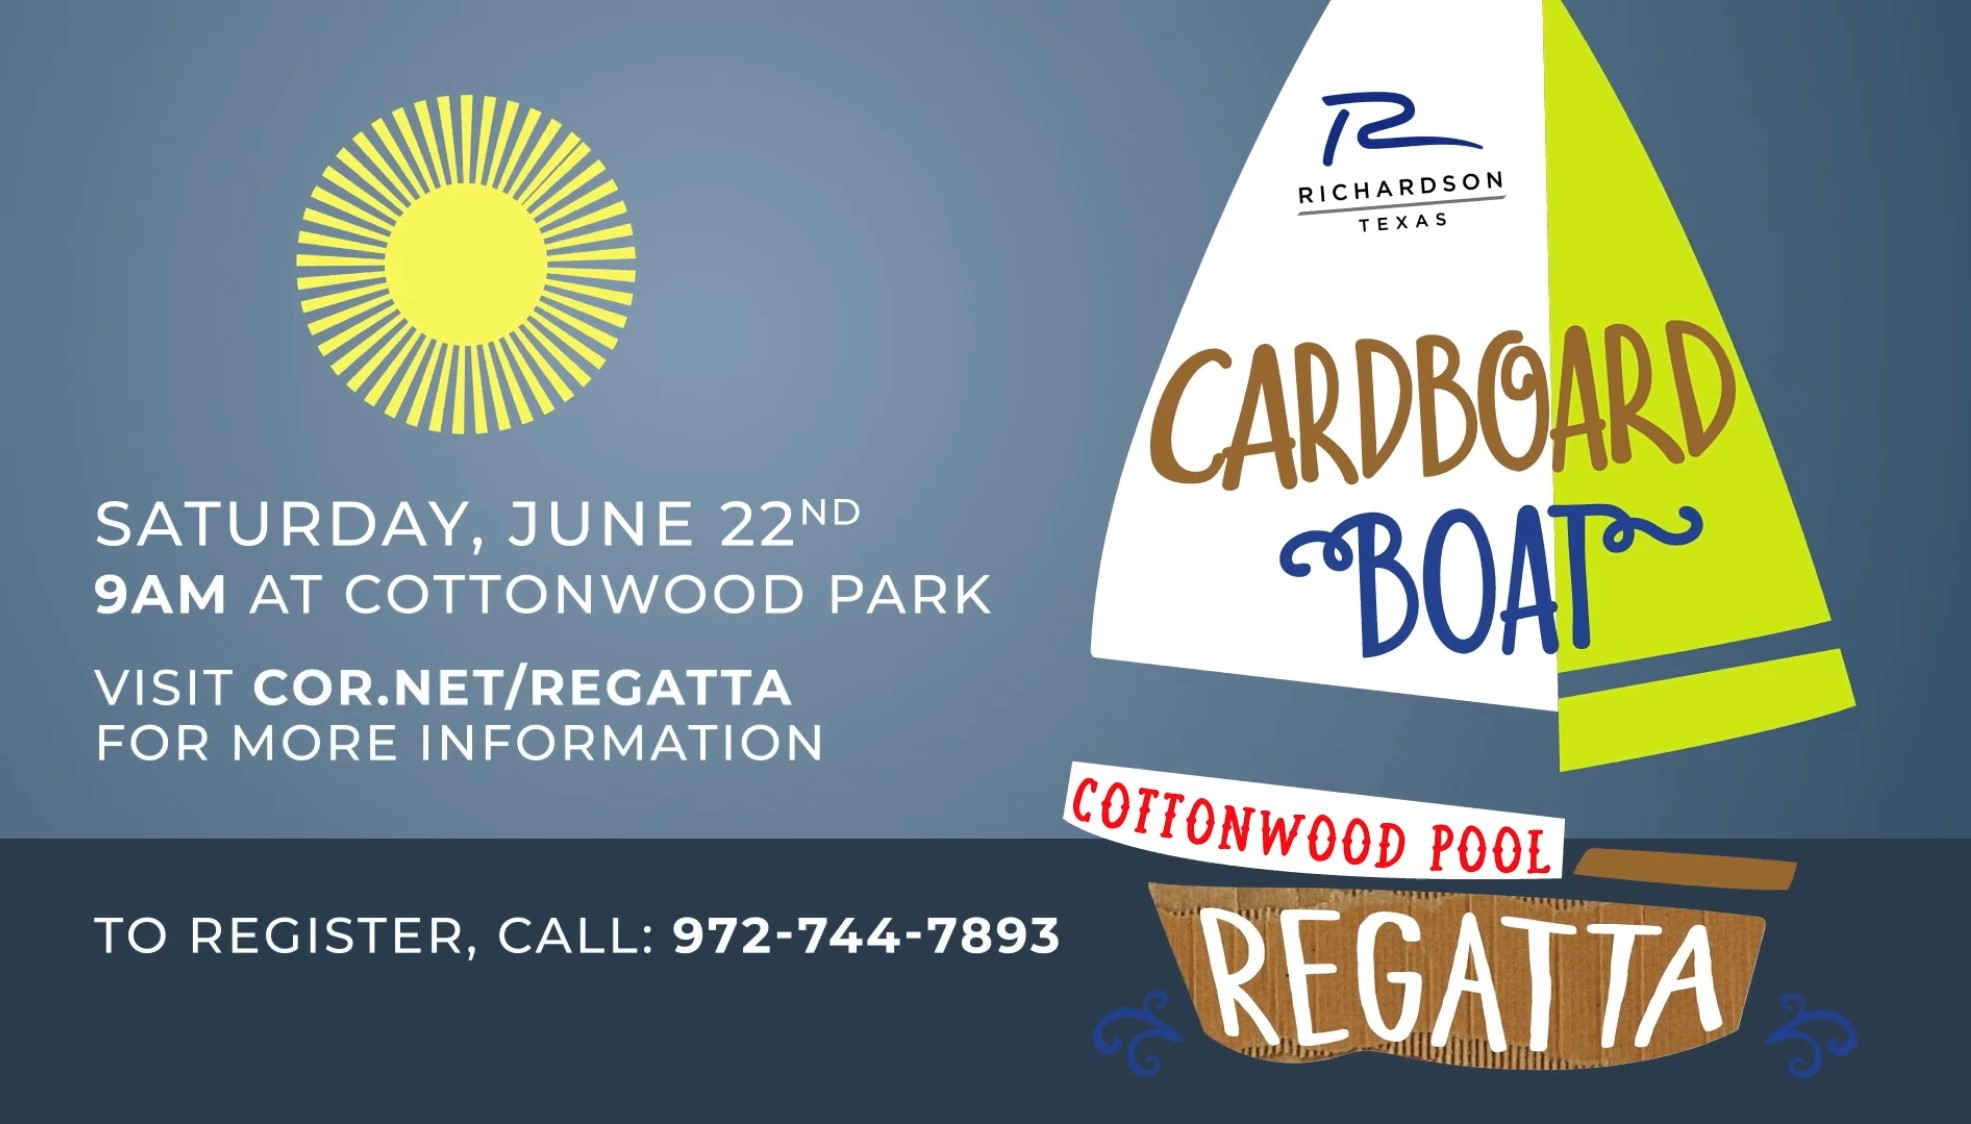 Annual Cardboard Boat Regatta taking place this Saturday